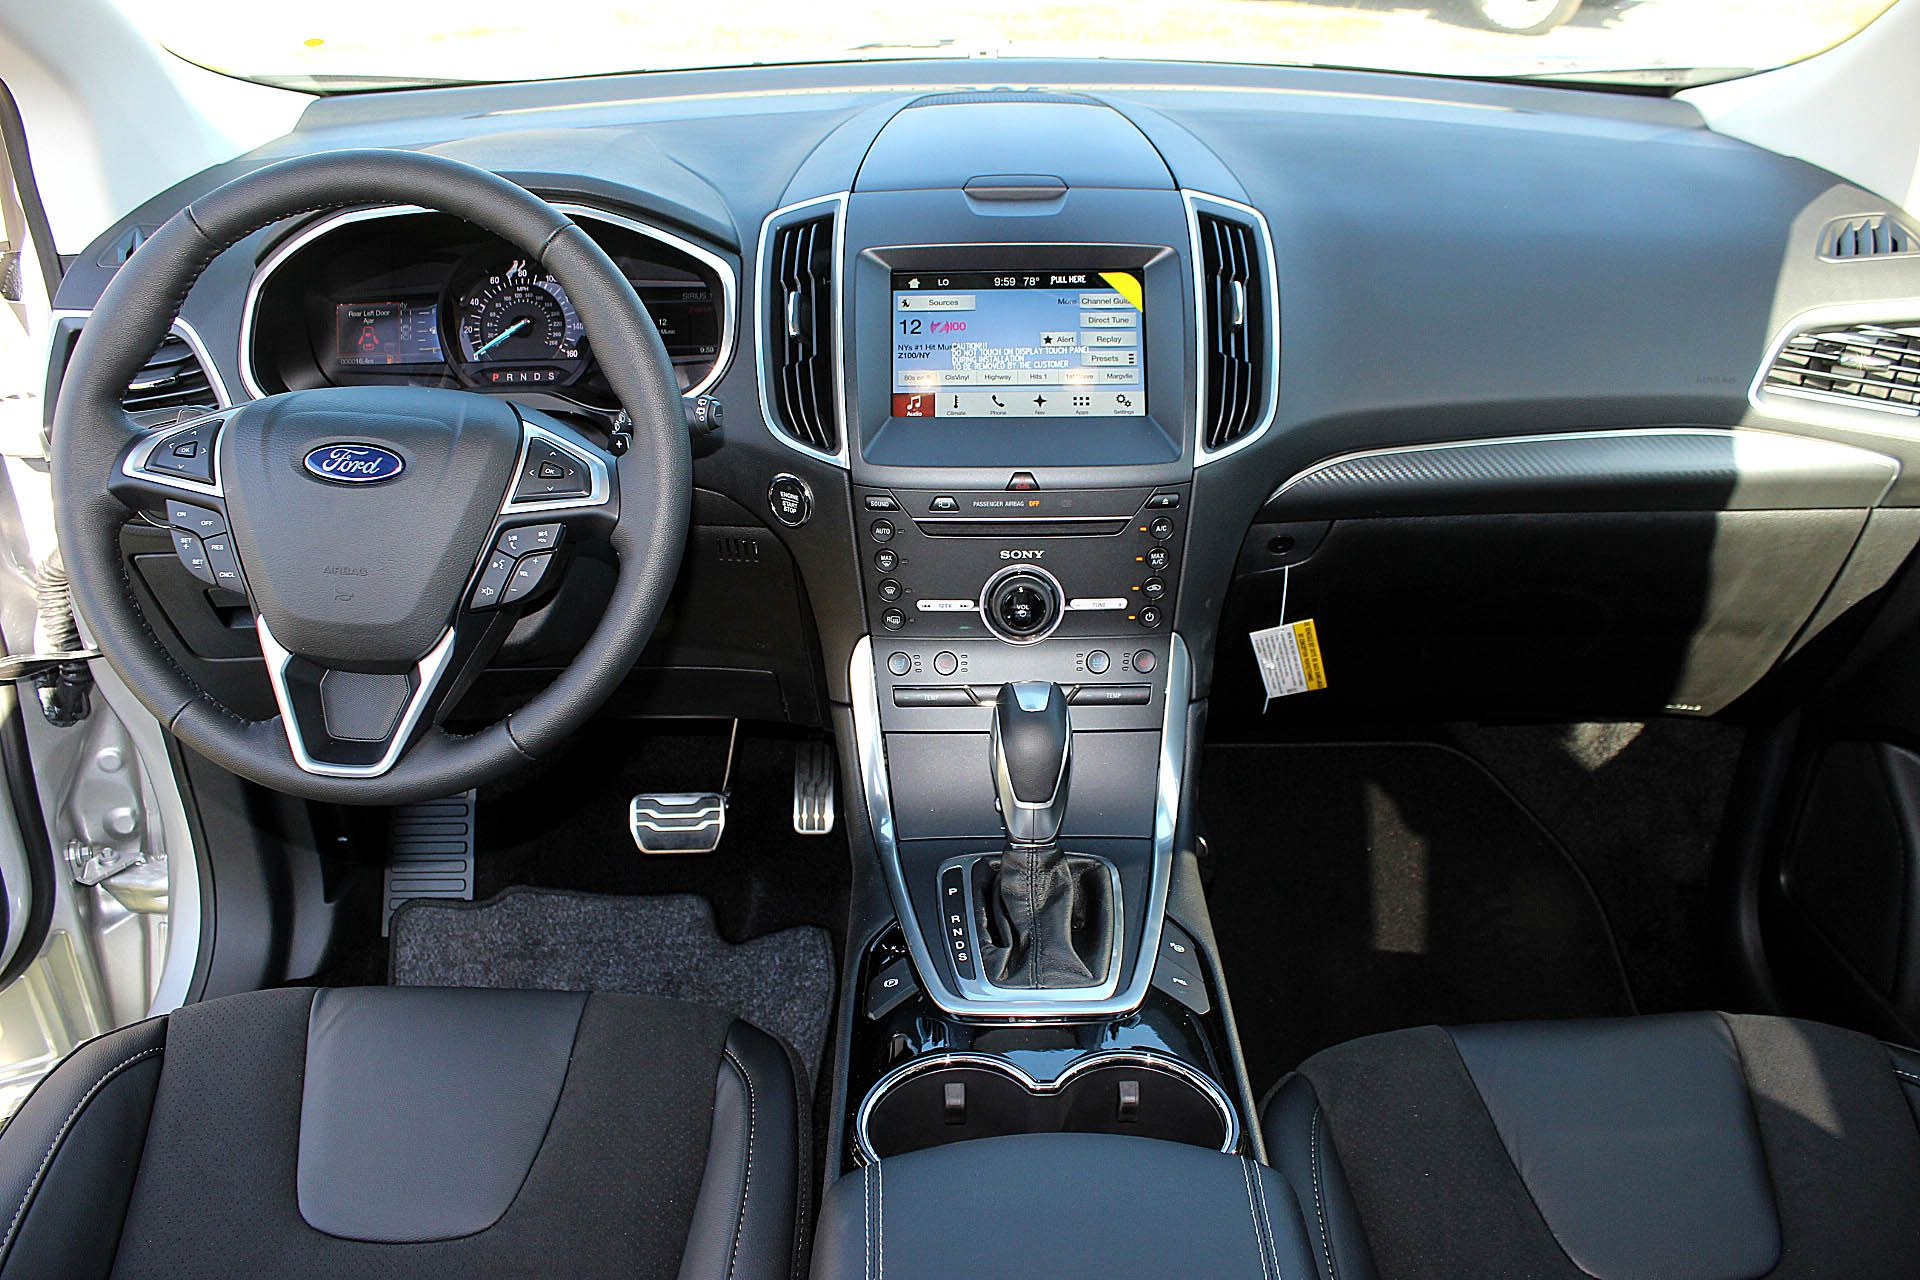 2016 Ford Edge Interior Options Ford Edge Ford New Ford Edge